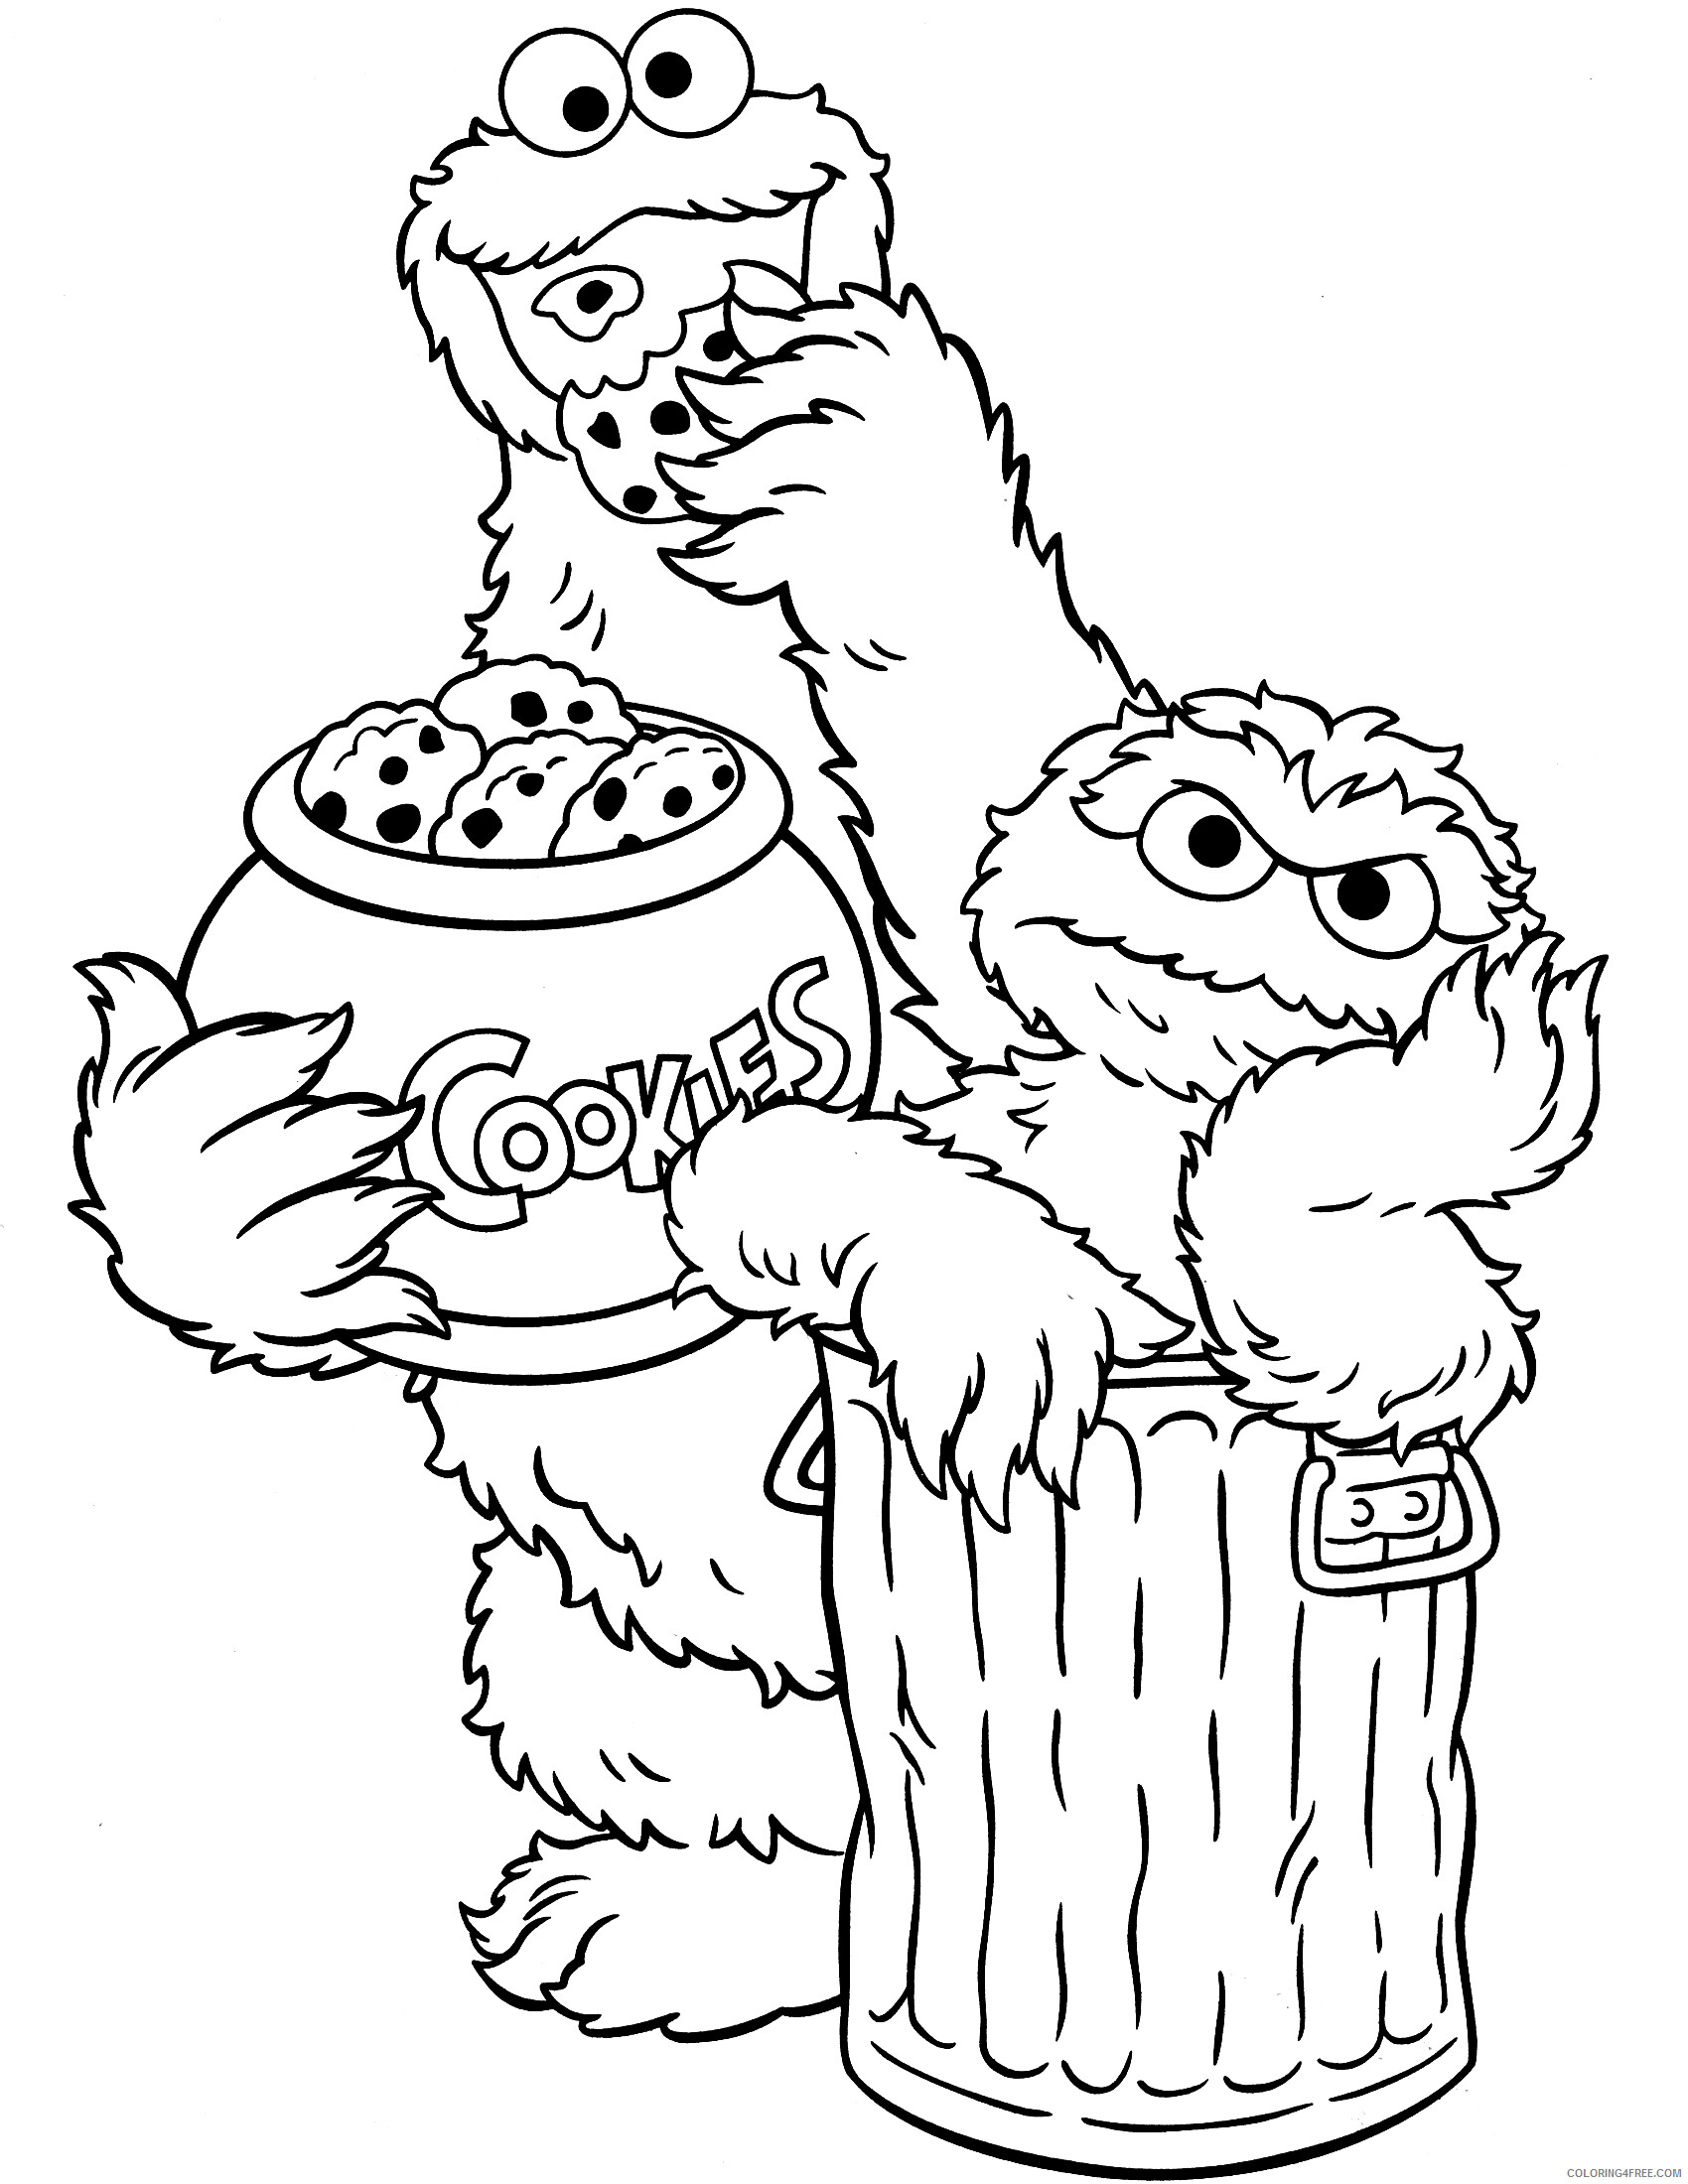 Sesame Street Coloring Pages TV Film Characters Printable 2020 07348 Coloring4free